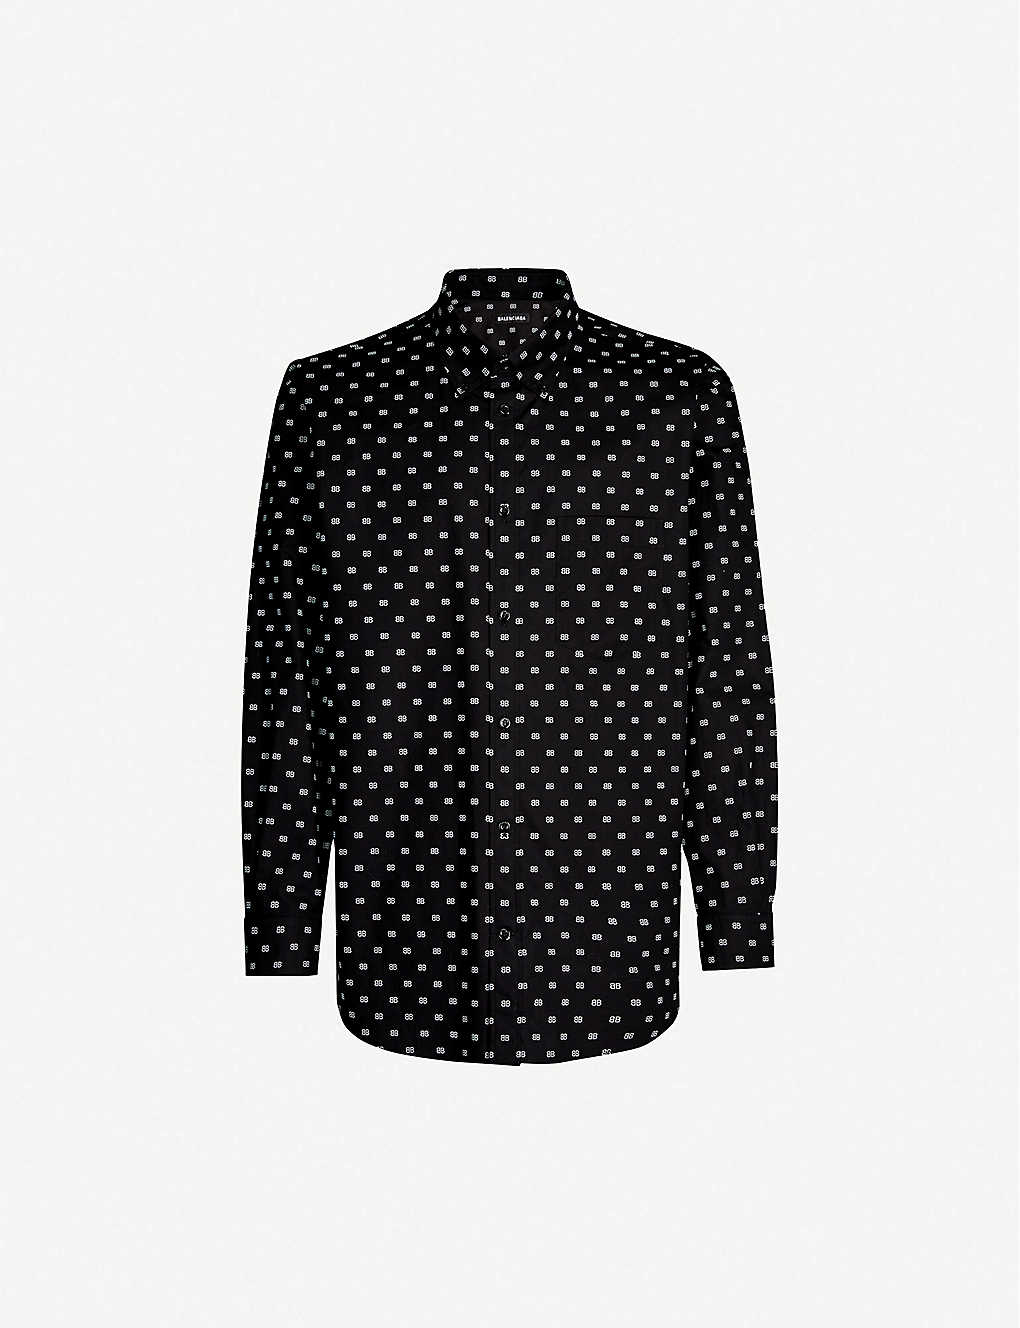 d4436c02f95f BALENCIAGA - Logo-print relaxed-fit cotton-poplin shirt | Selfridges.com